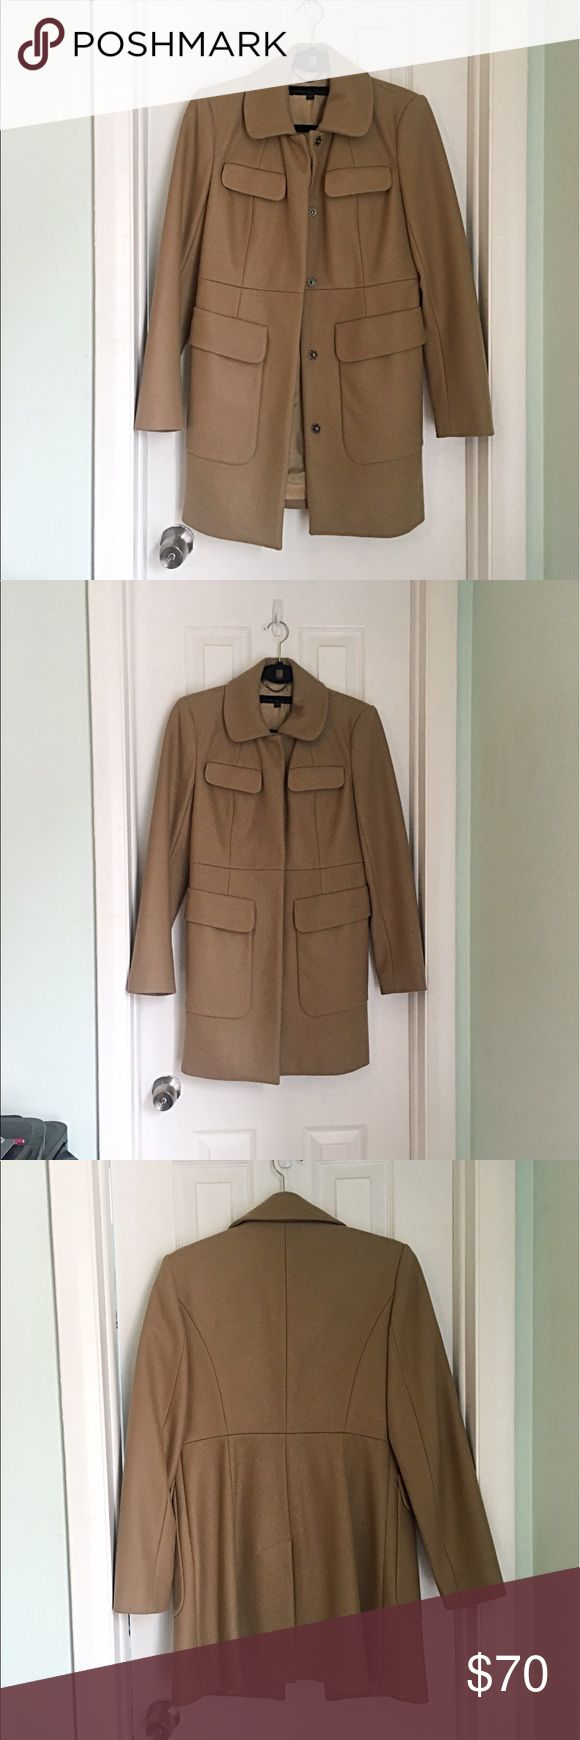 French Connection Camel Jacket Beautiful camel French connection pea coat. Only worn once. Small defect in interior liner (pictured) but the outside looks like new. 70% wool, 20% nylon, 10% cashmere French Connection Jackets & Coats Pea Coats